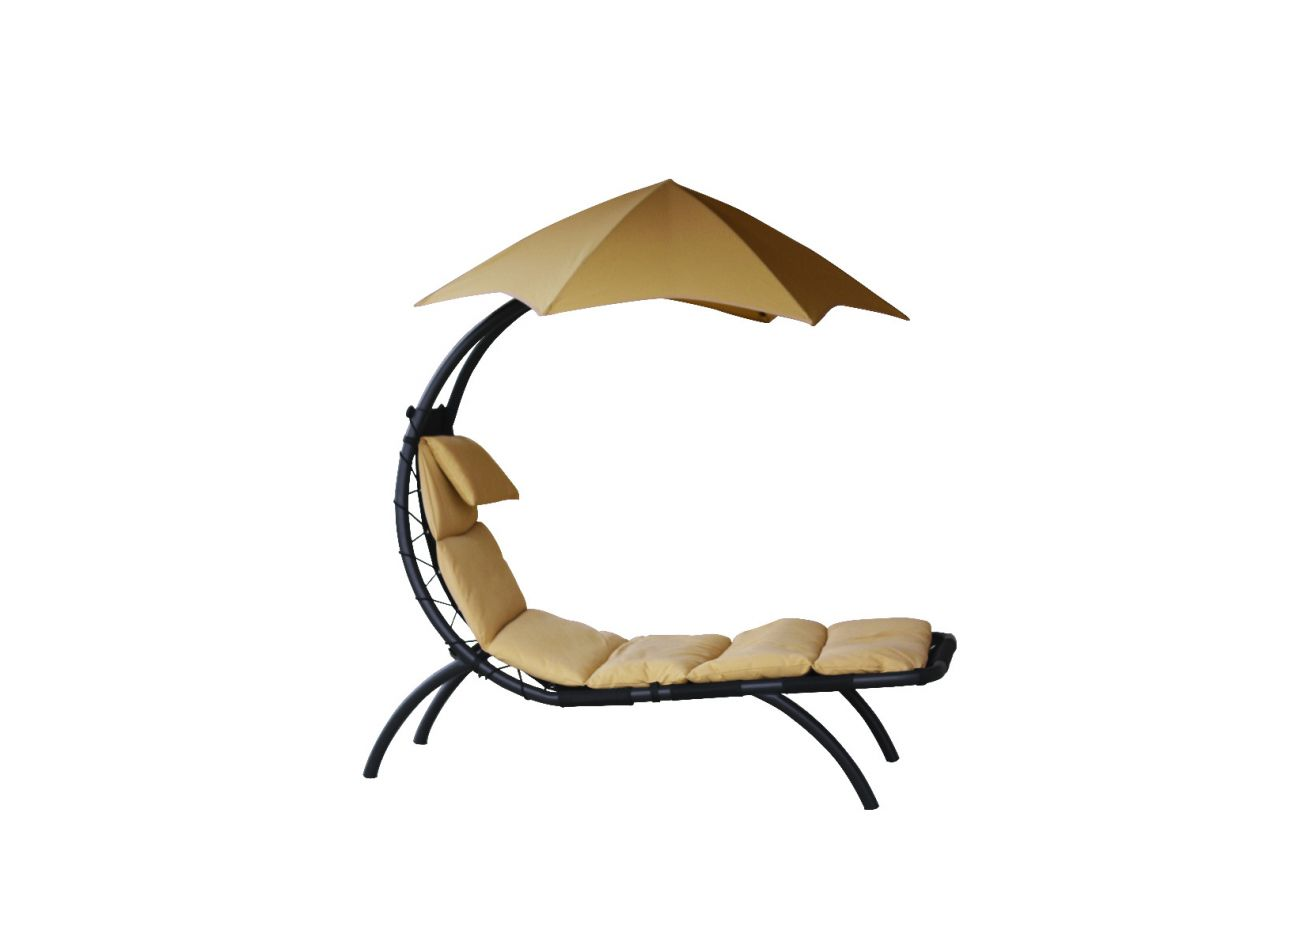 Original 1 Person Dream Lounger Sand